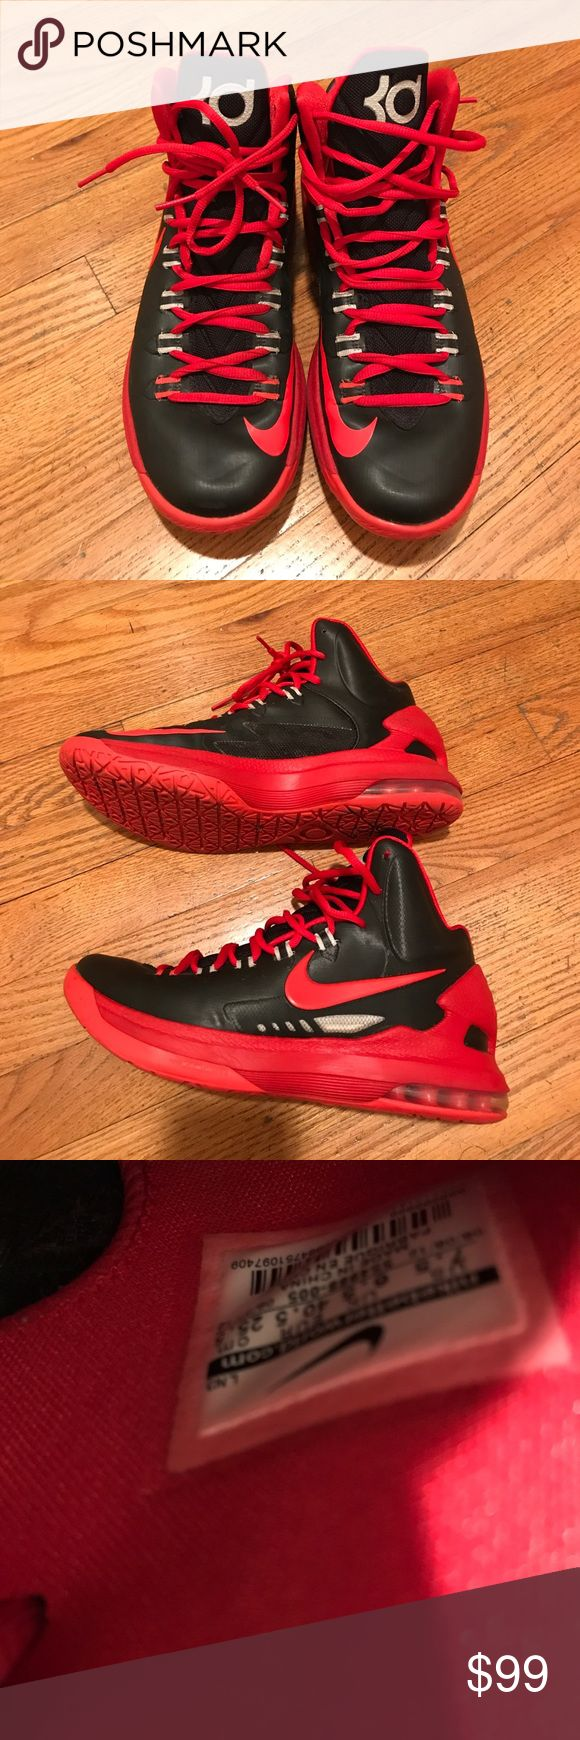 Nike Kevin Durant basketball shoes Excellent condition basketball shoes Nike Shoes Sneakers